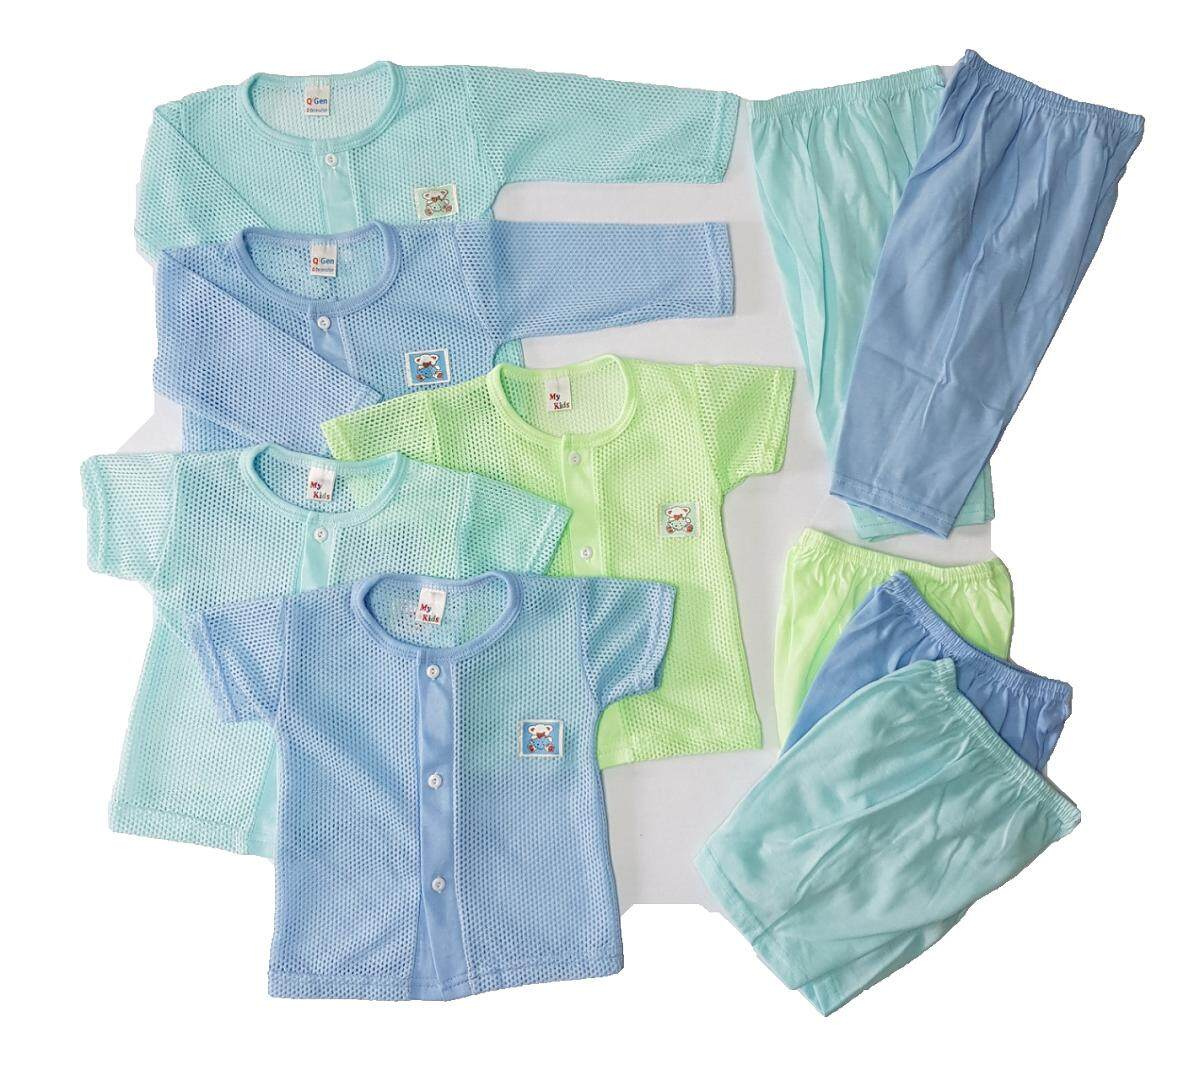 5 Set NewBorn Eyelet Comfort Wear Mix And Match Fit For Under 12 Month Baby